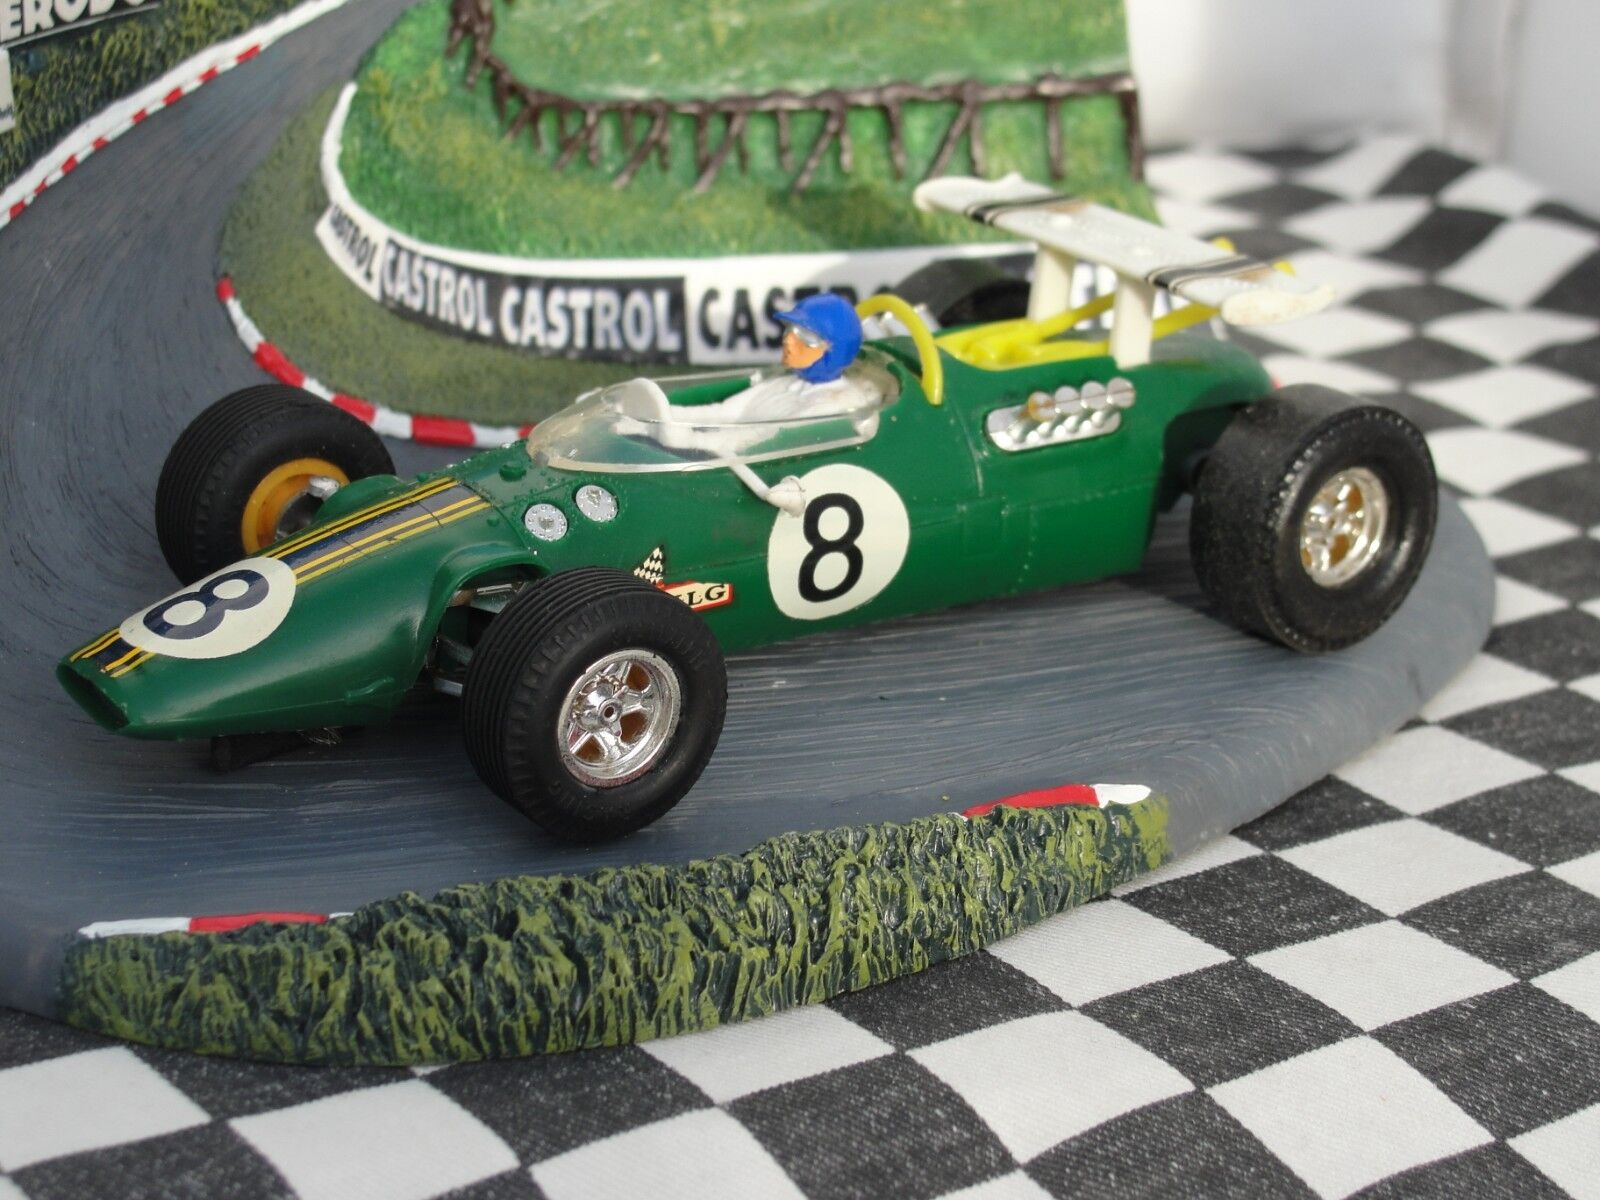 SCALEXTRIC 1960'S LOTUS INDIANAPOLIS GREEN    C8    1 32 SLOT USED UNBOXED